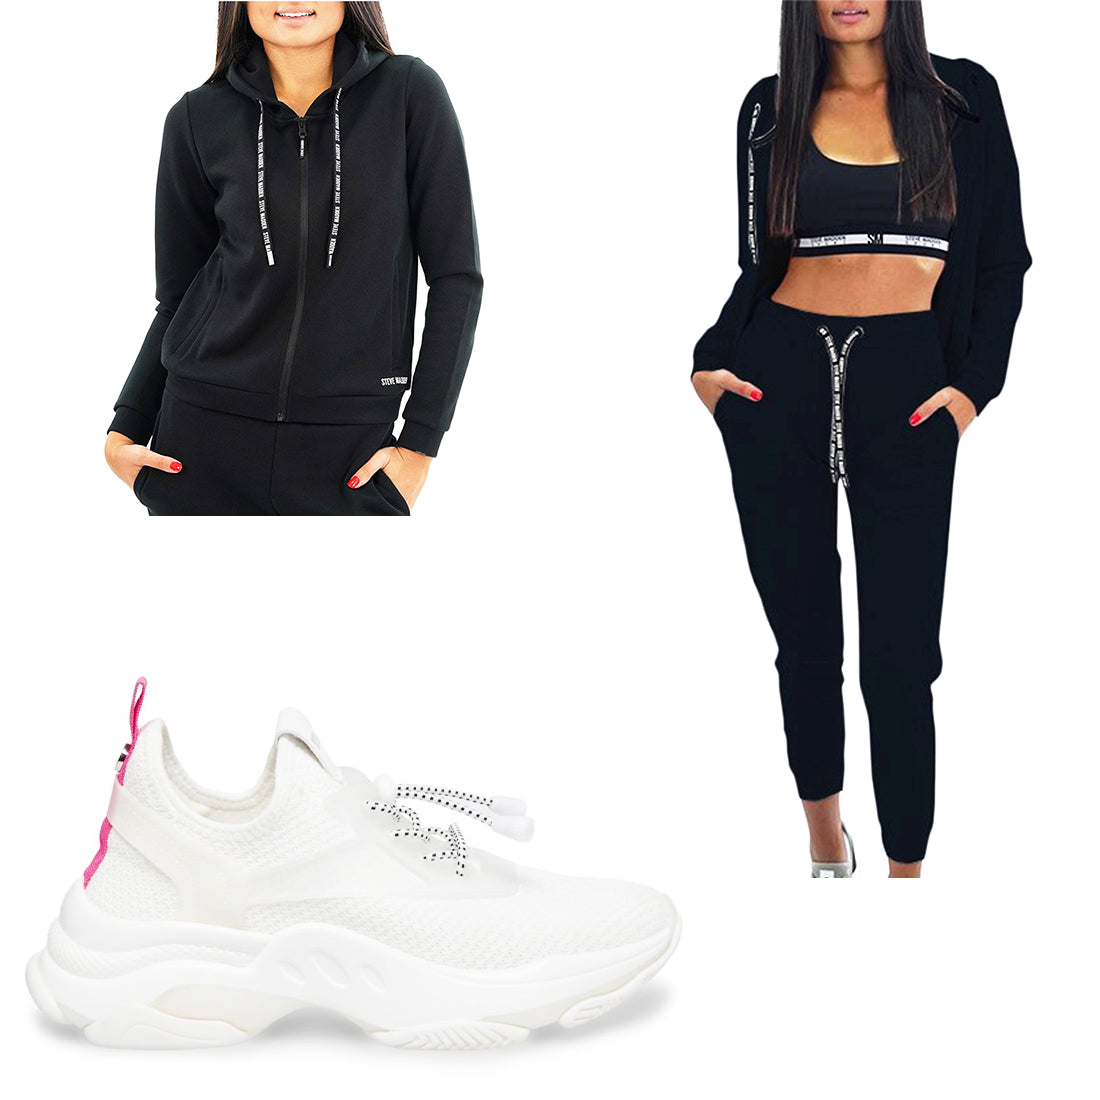 ZIP-UP ACTIVE SWEATSHIRT BLACK + ACTIVE JOGGERS BLACK + MYLES WHITE